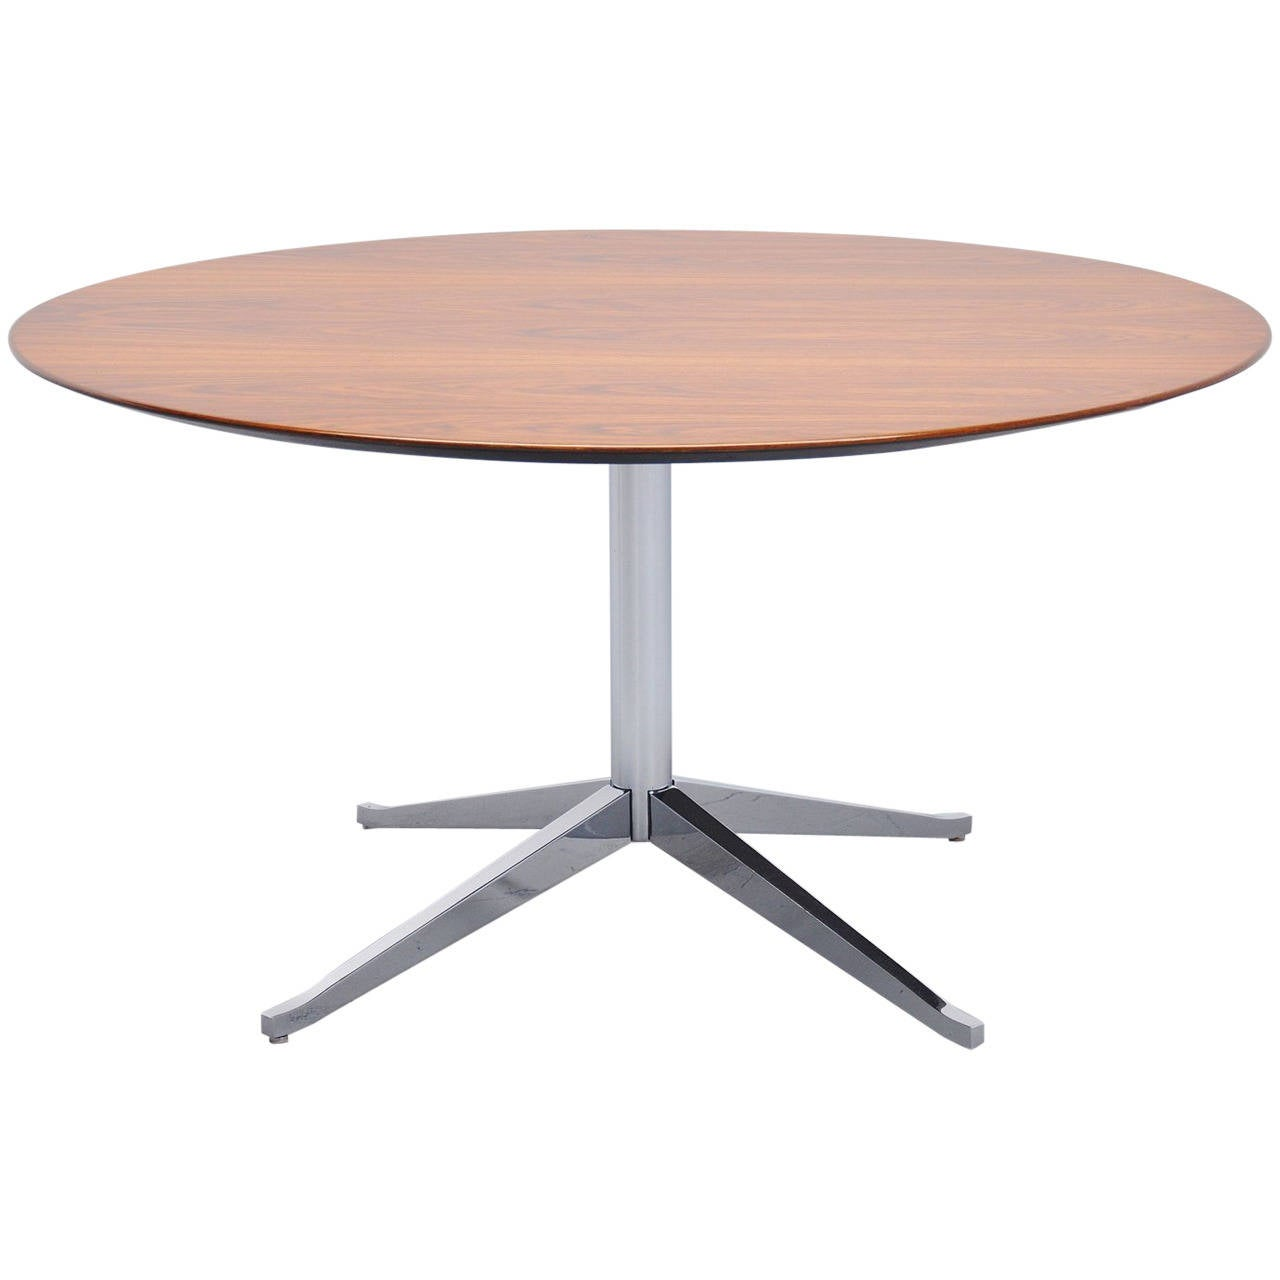 Knoll Round Dining Table By Florence Knoll 1960 At 1stdibs